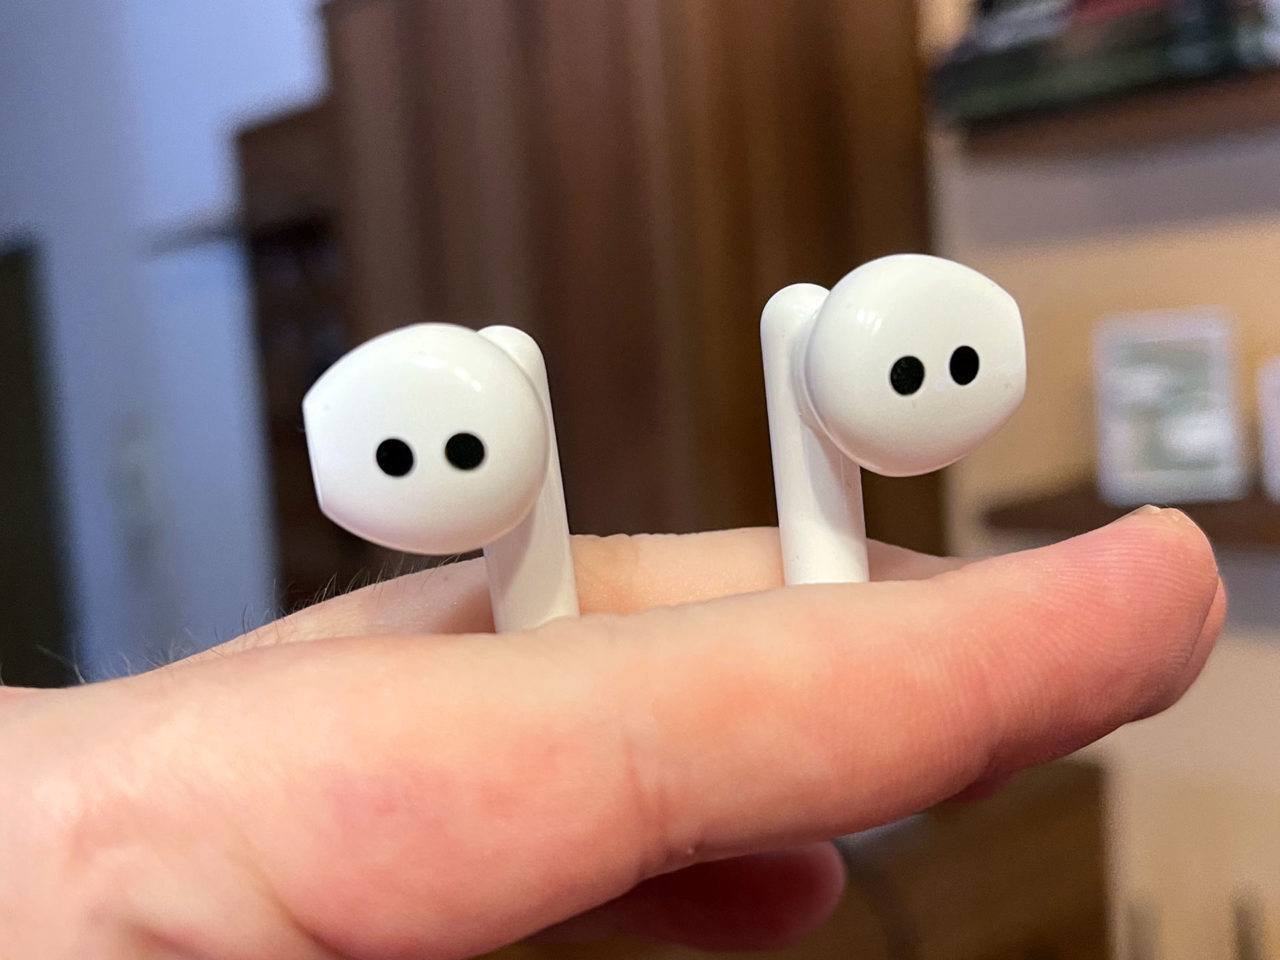 earbuds in hand